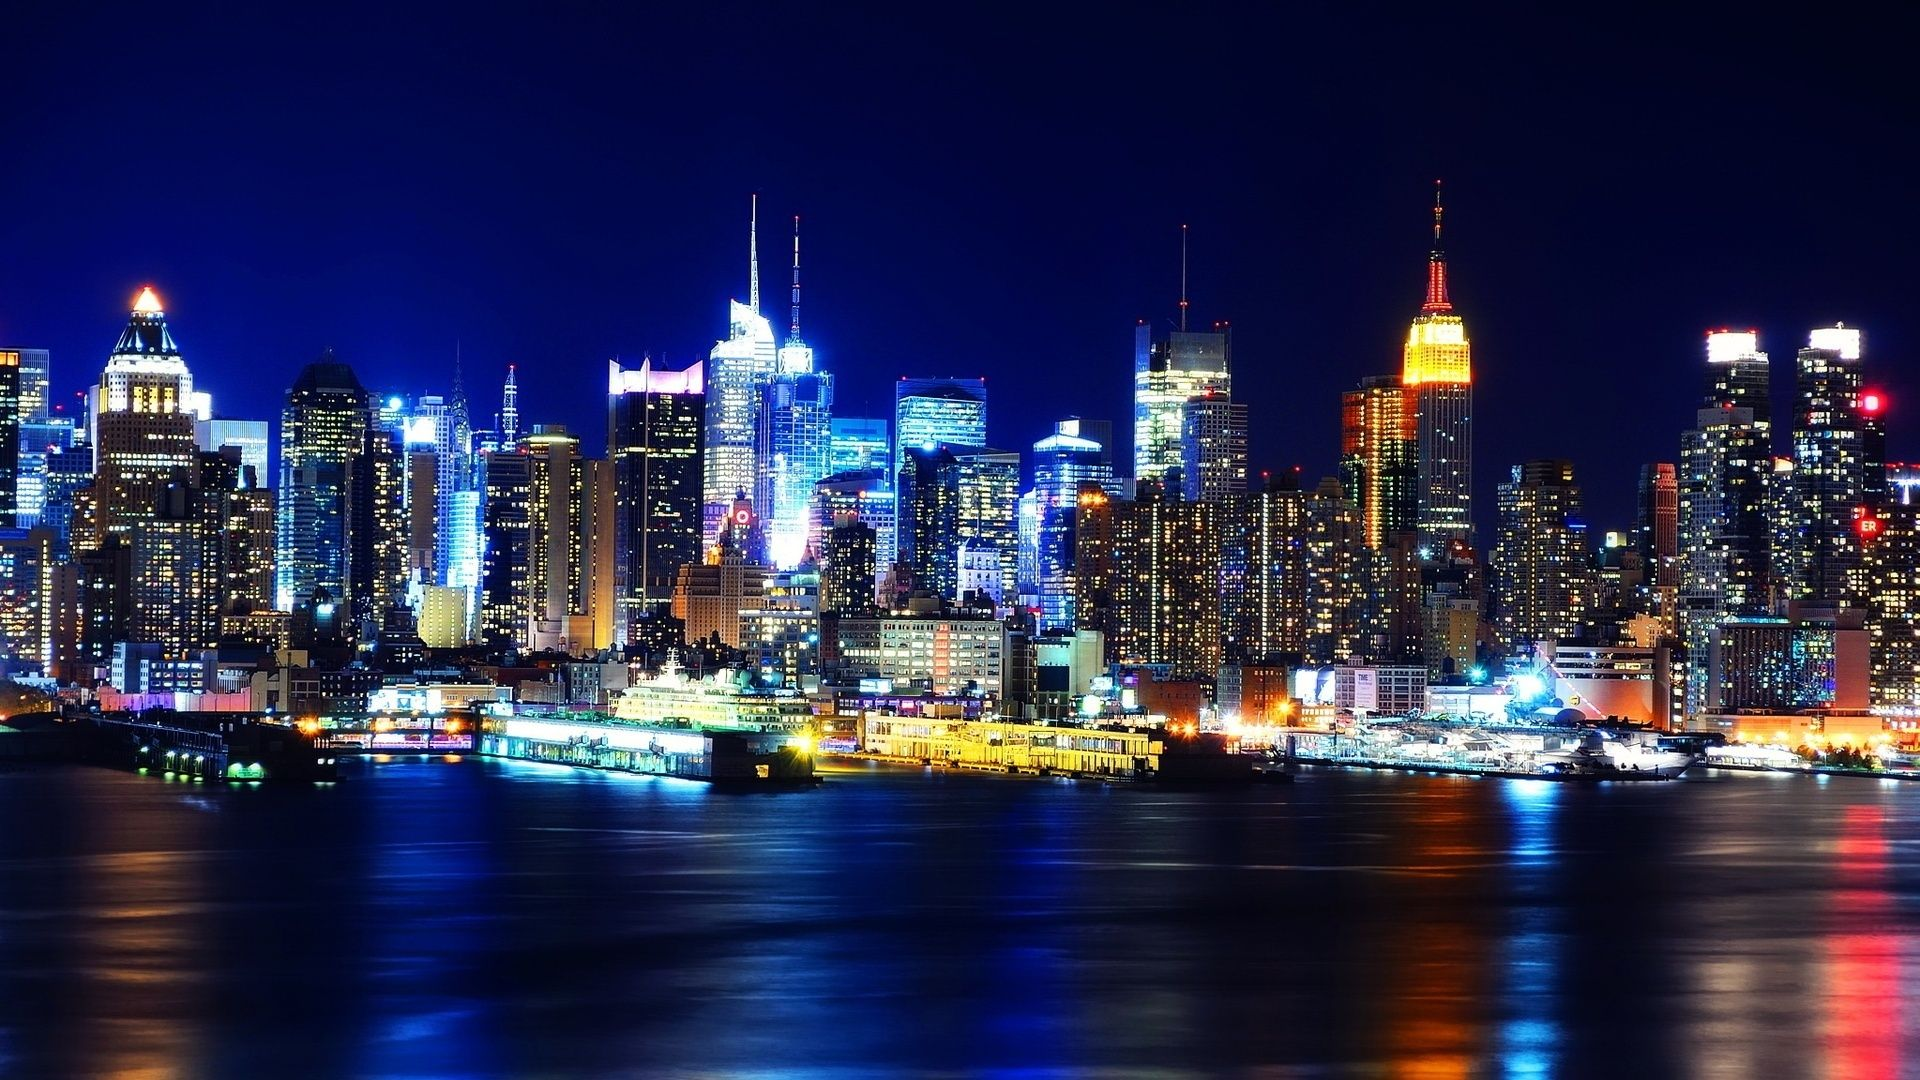 new york city at night free wallpaper i hd images | hd wallpapers